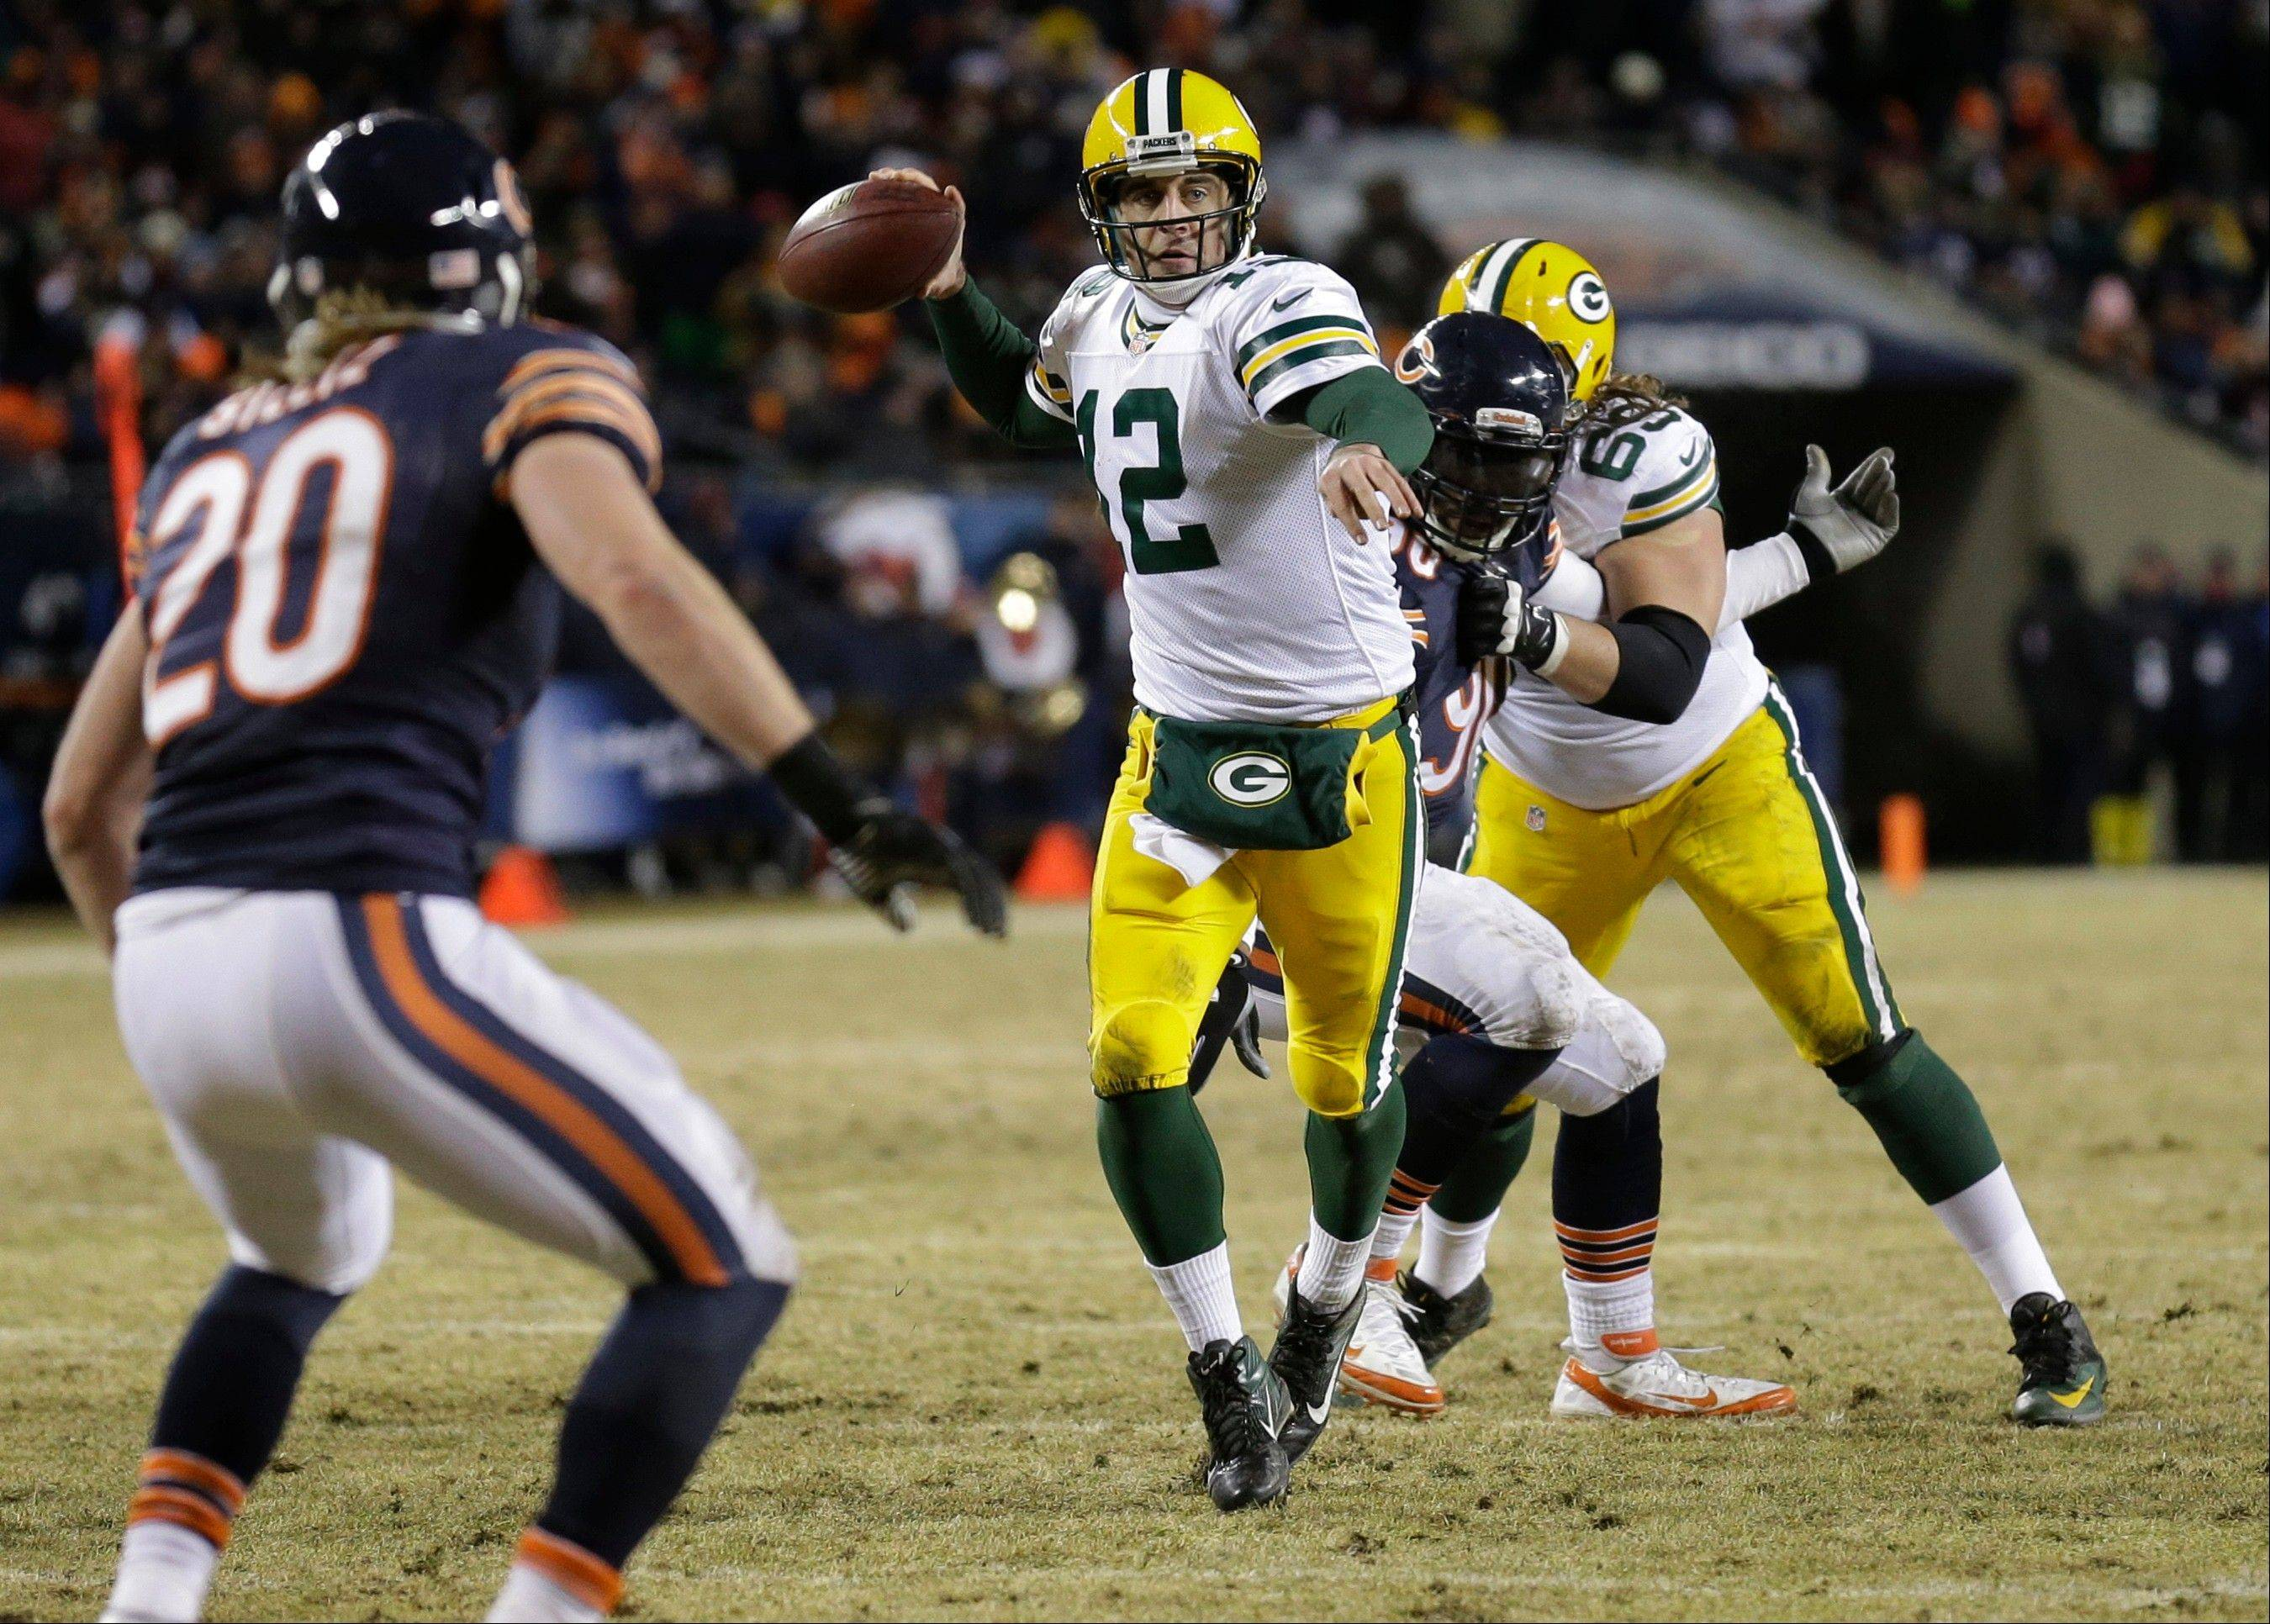 Green Bay Packers quarterback Aaron Rodgers (12) throws a touchdown pass to Green Bay Packers wide receiver Randall Cobb during the second half.